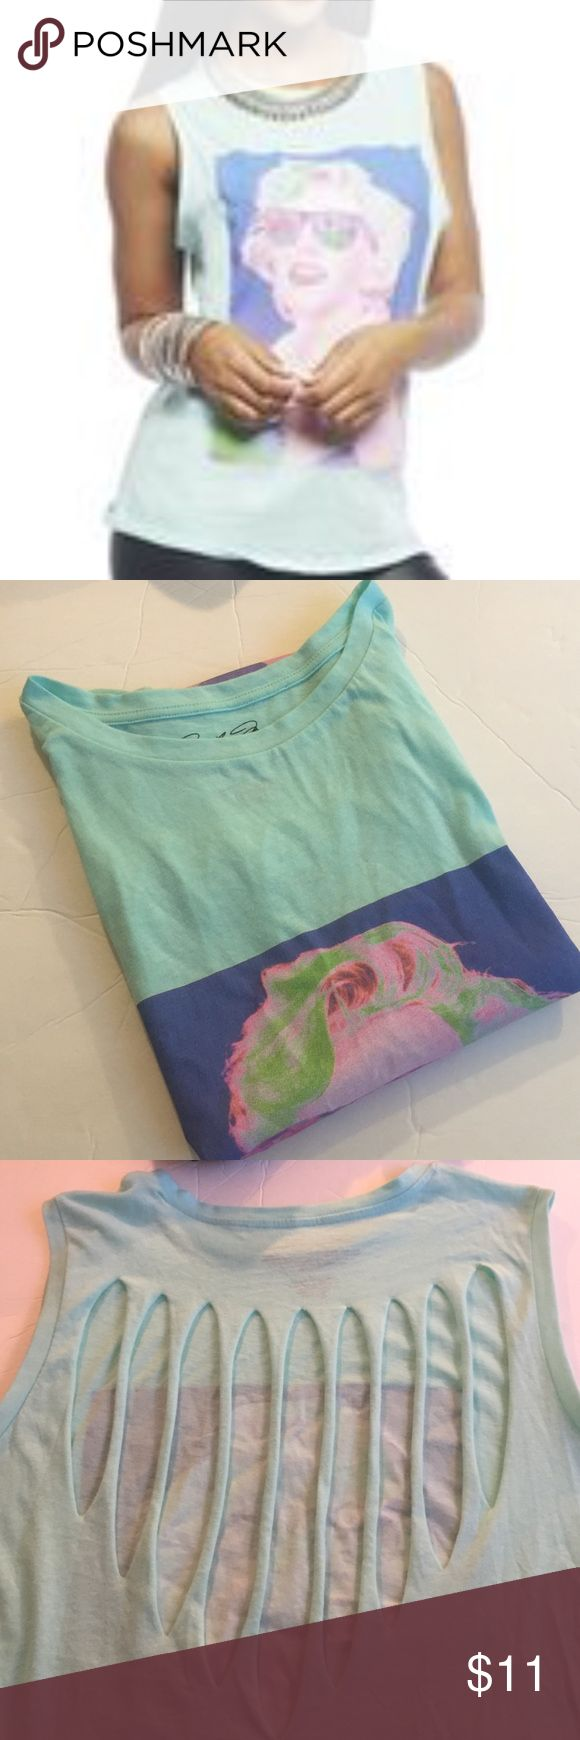 Wet Seal NWT Marilyn Monroe Top Wet Seal Marilyn Monroe Teal/Mint Top. New With Tag. Cute back! No Trades. Tops Muscle Tees